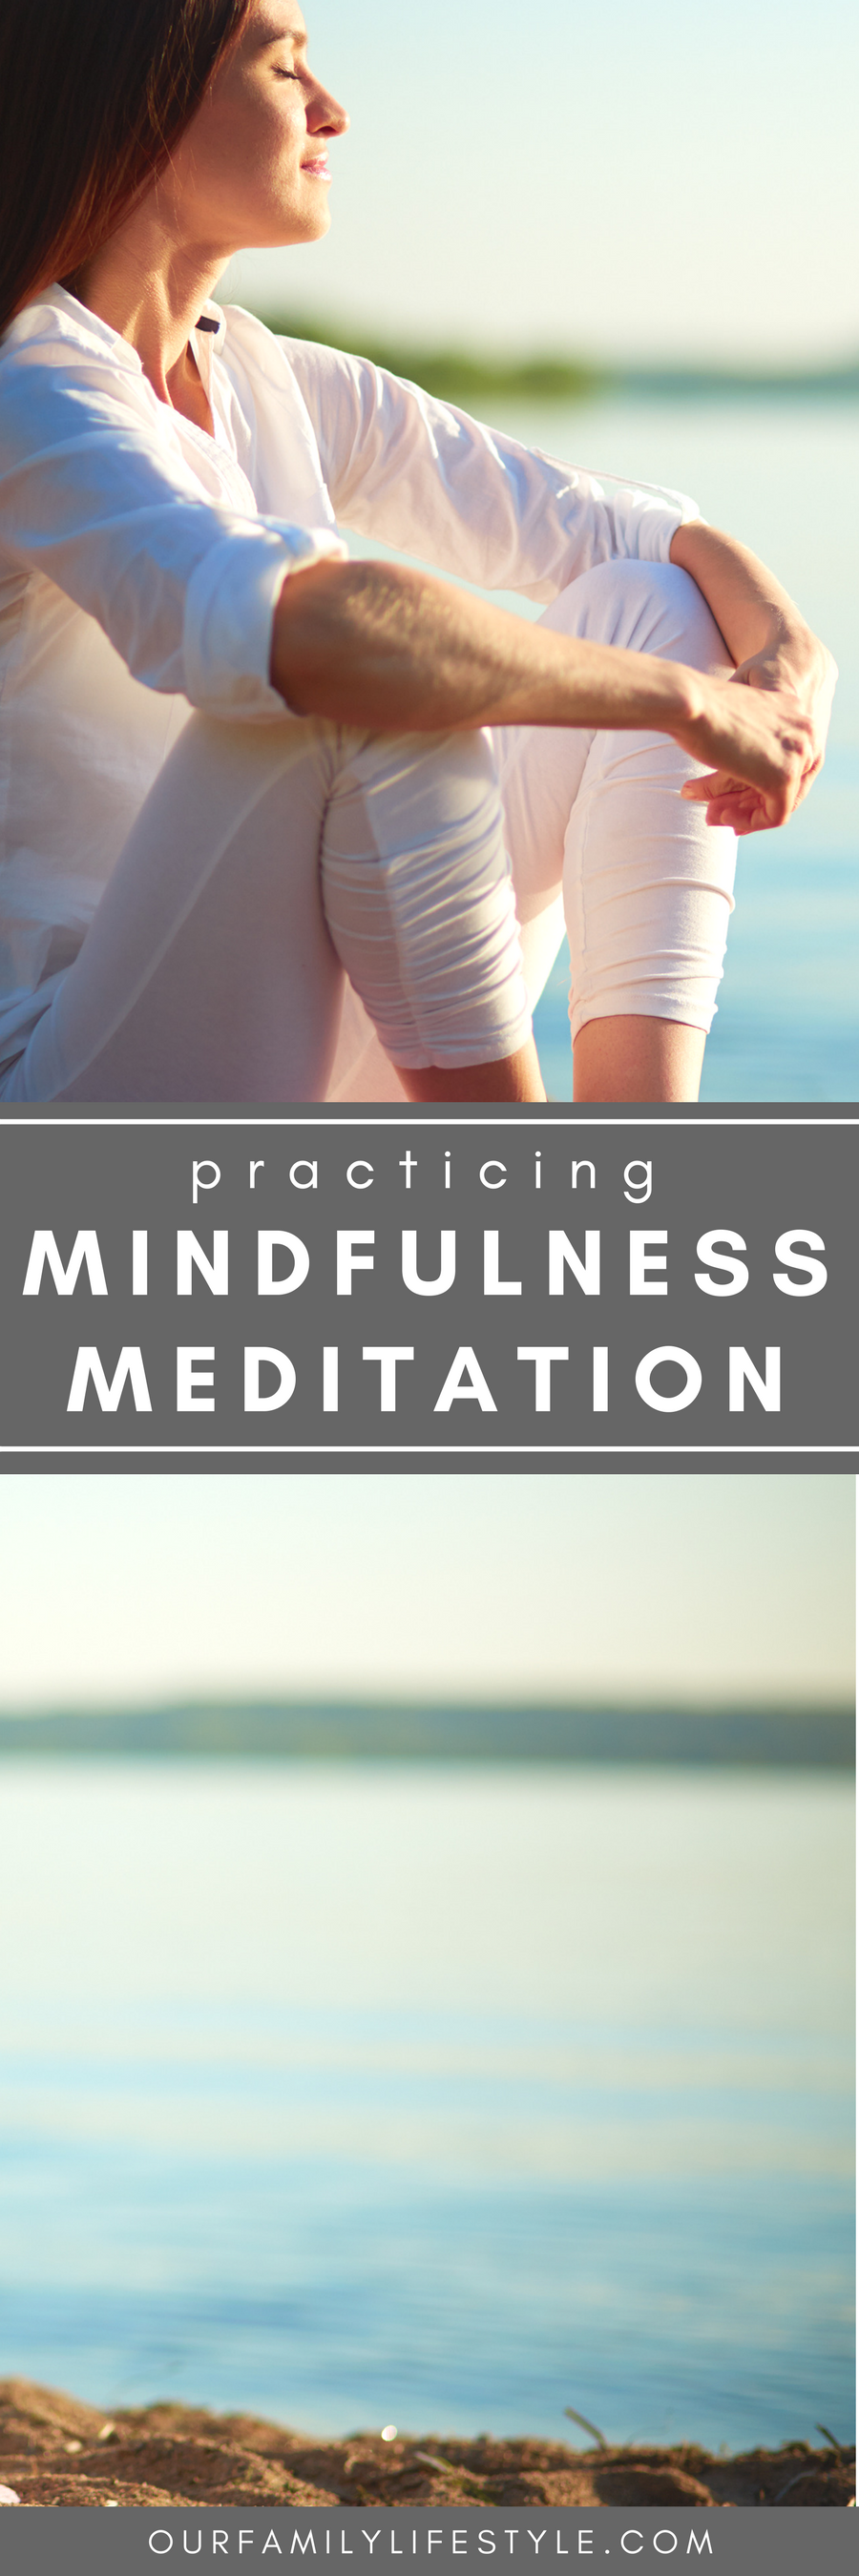 Practicing Mindfulness Meditation can help you live in the moment. The benefits of practicing mindfulness are huge and all it takes is a little bit of focus and breath to help reduce stress and simply be present.